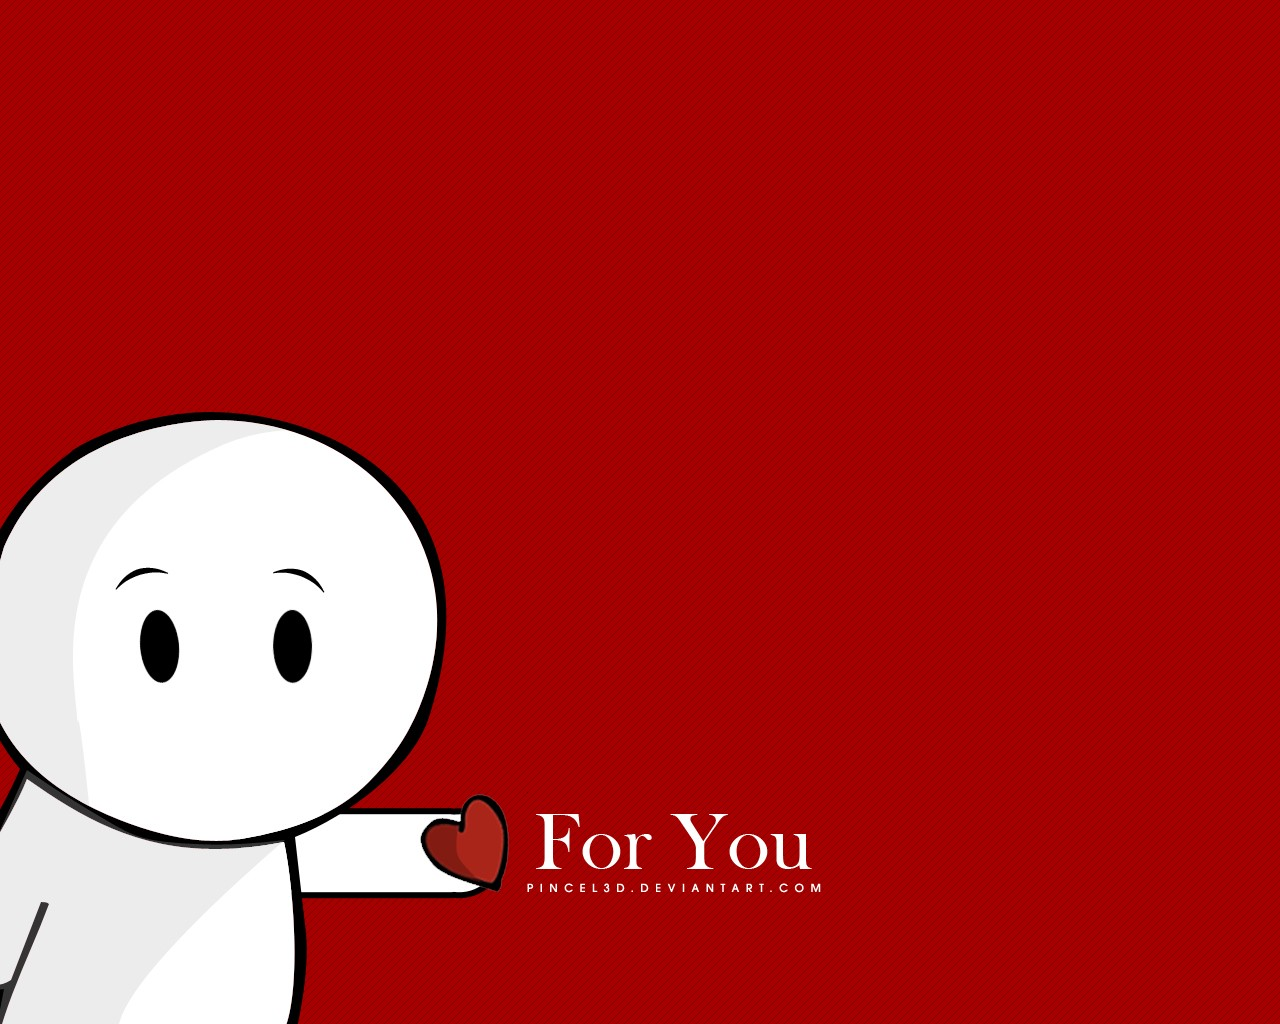 I Love You Wallpapers HD A16 - HD Desktop Wallpapers 4k HD